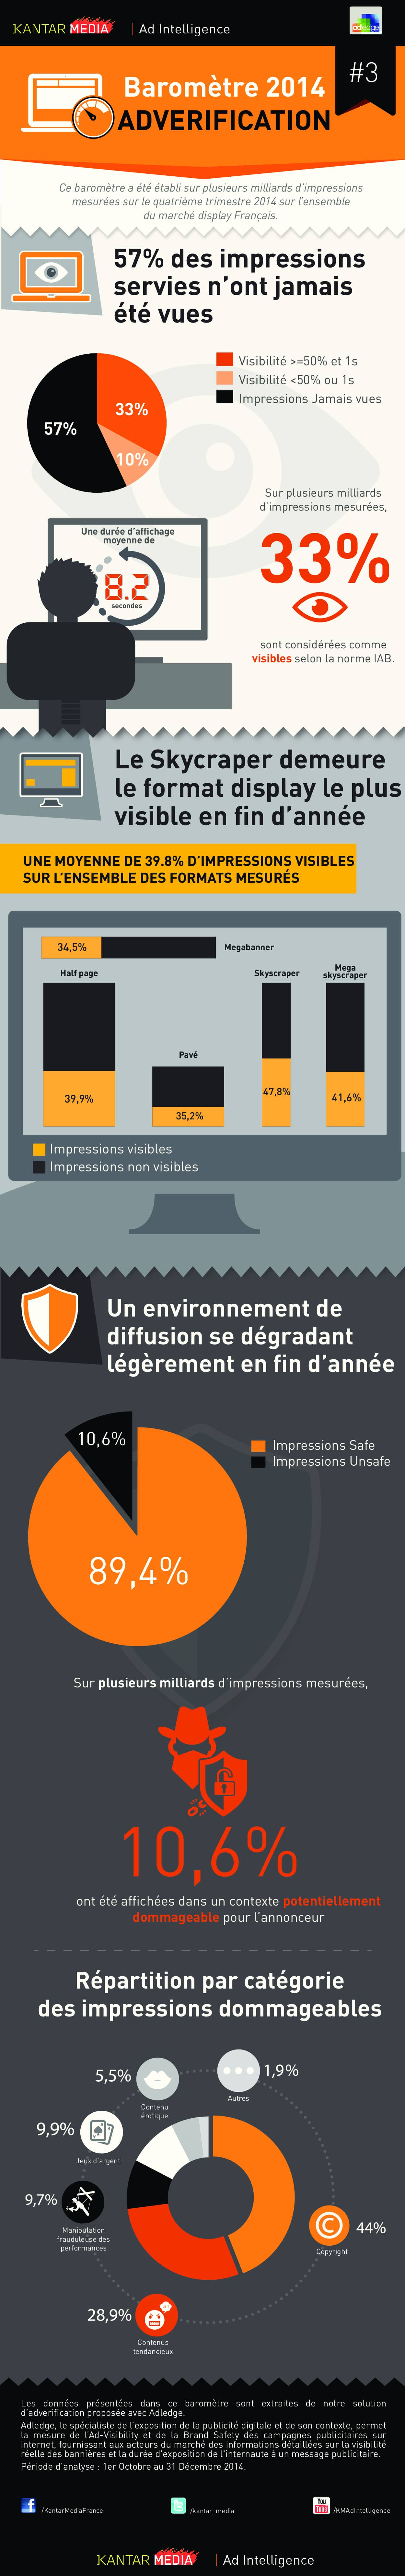 infographie-publicite-display